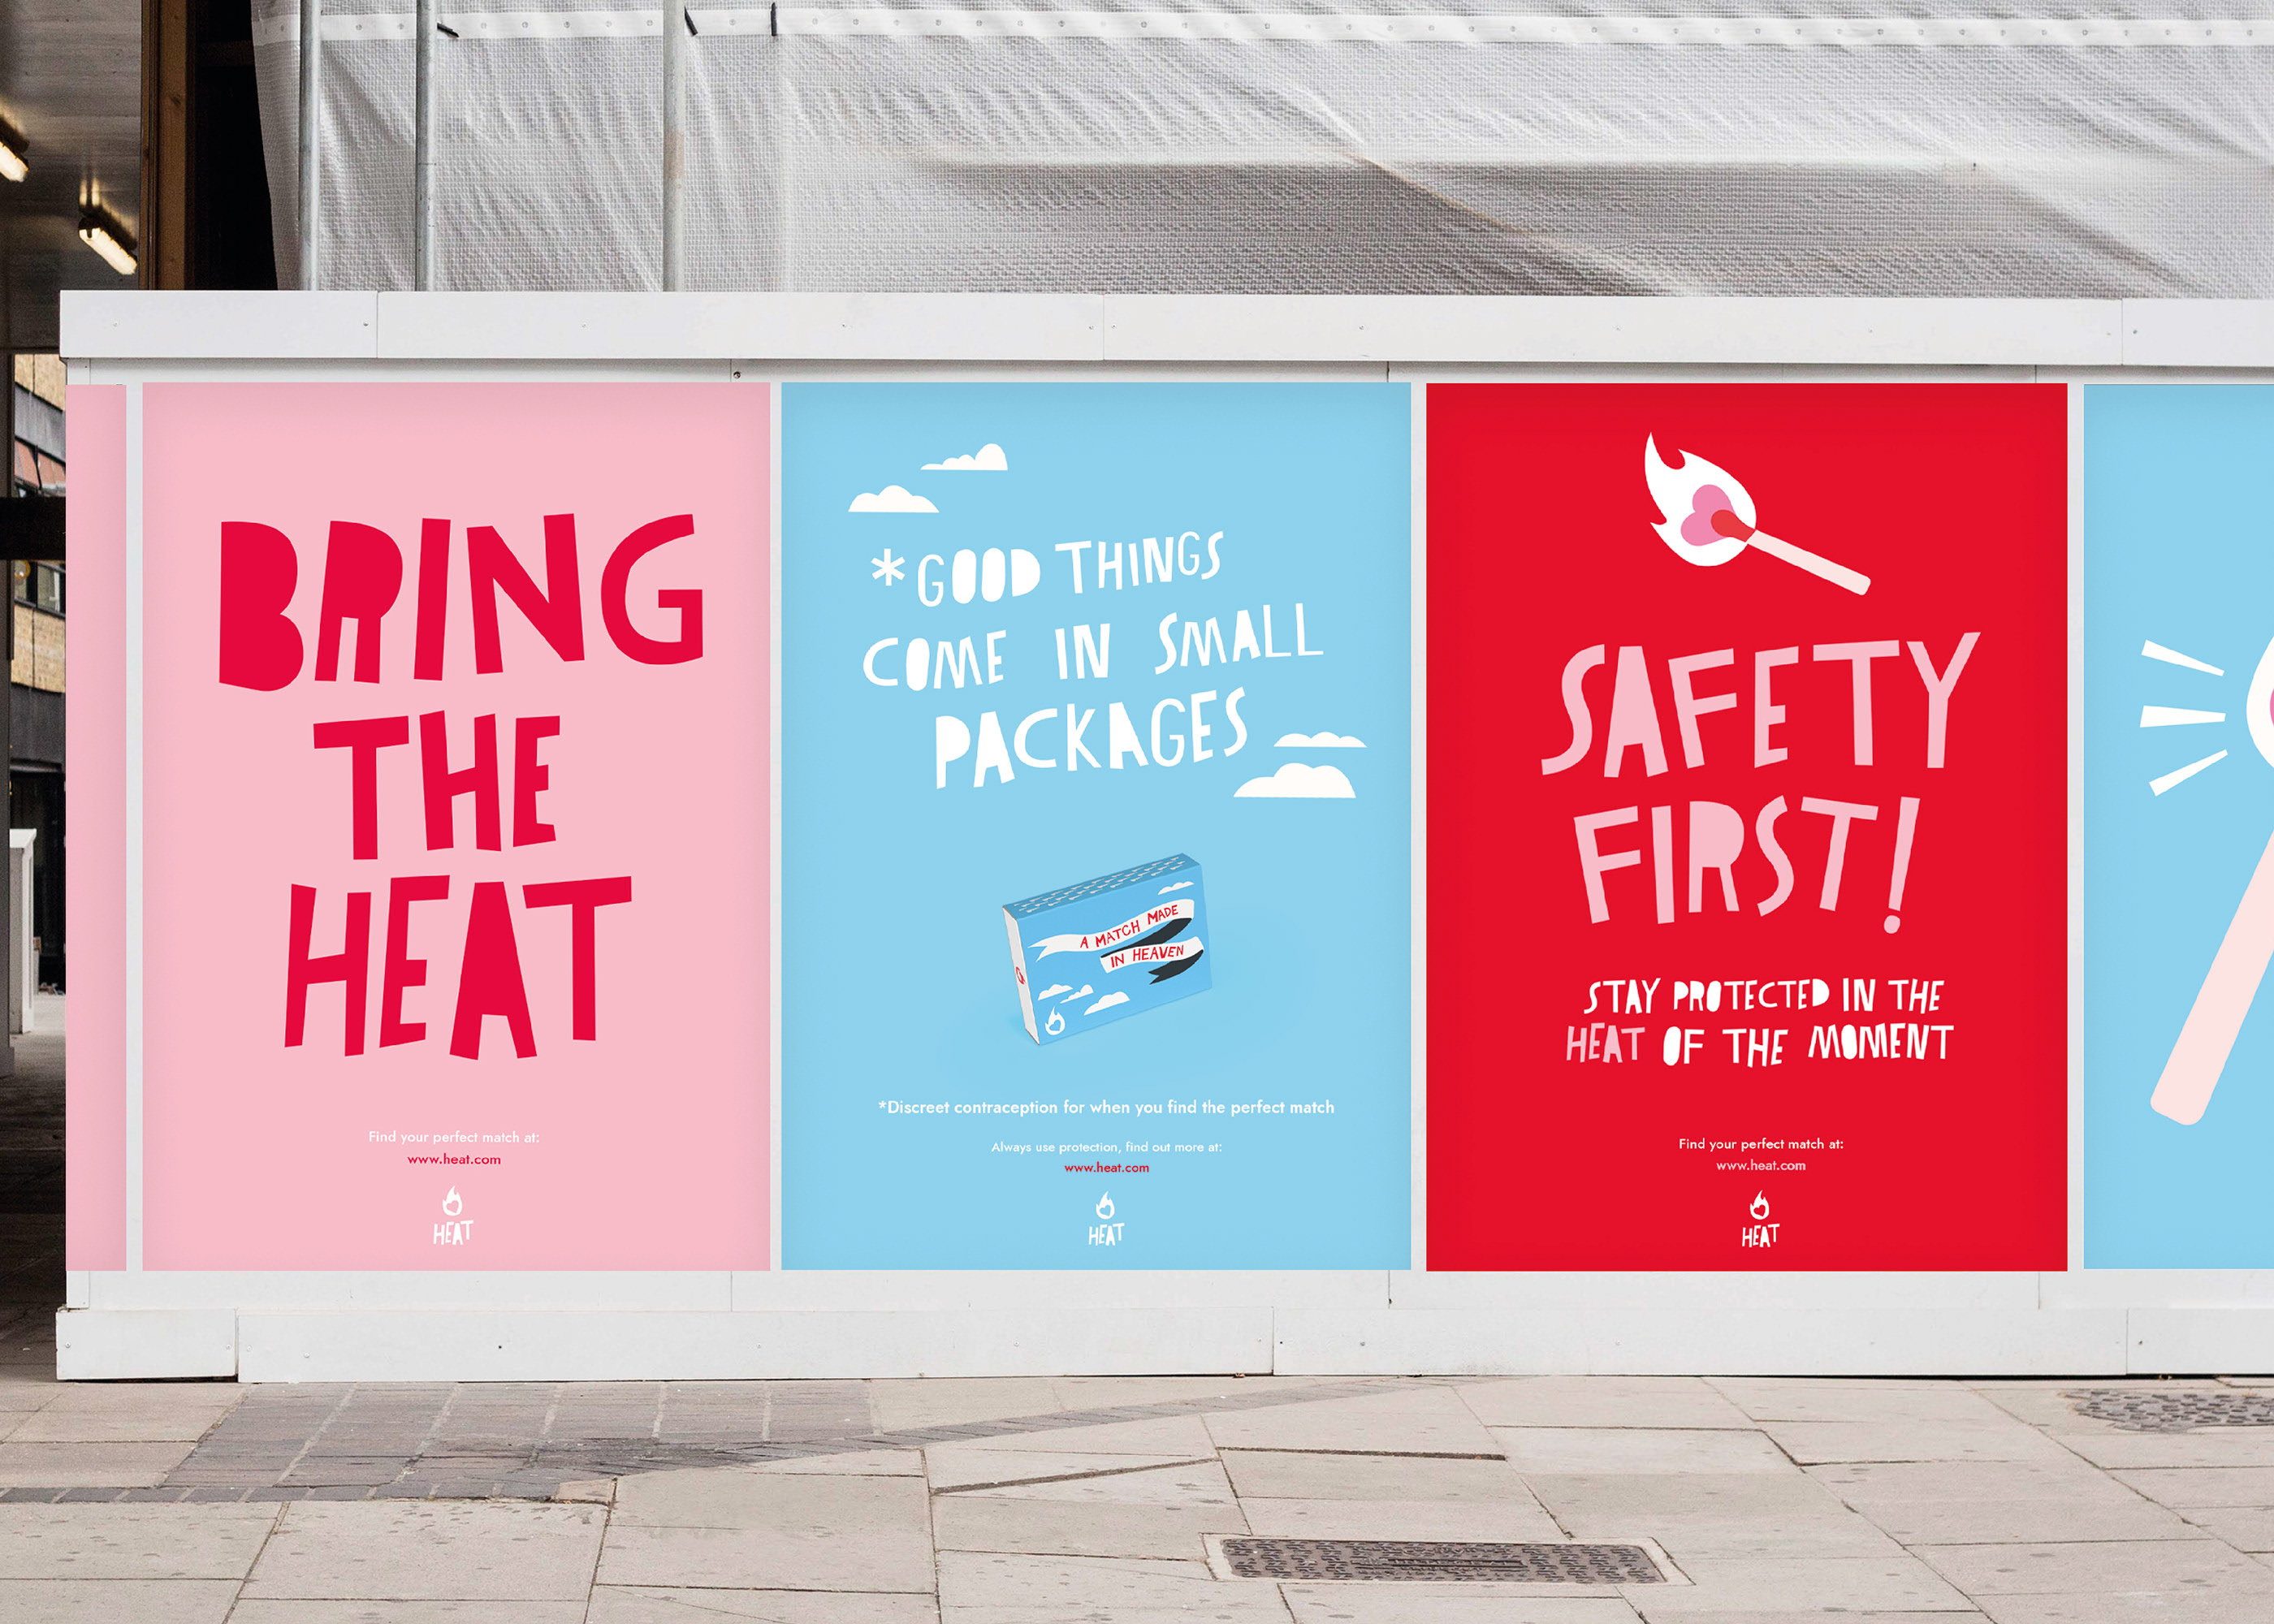 Conceptual Contraception Brand and Packaging Design